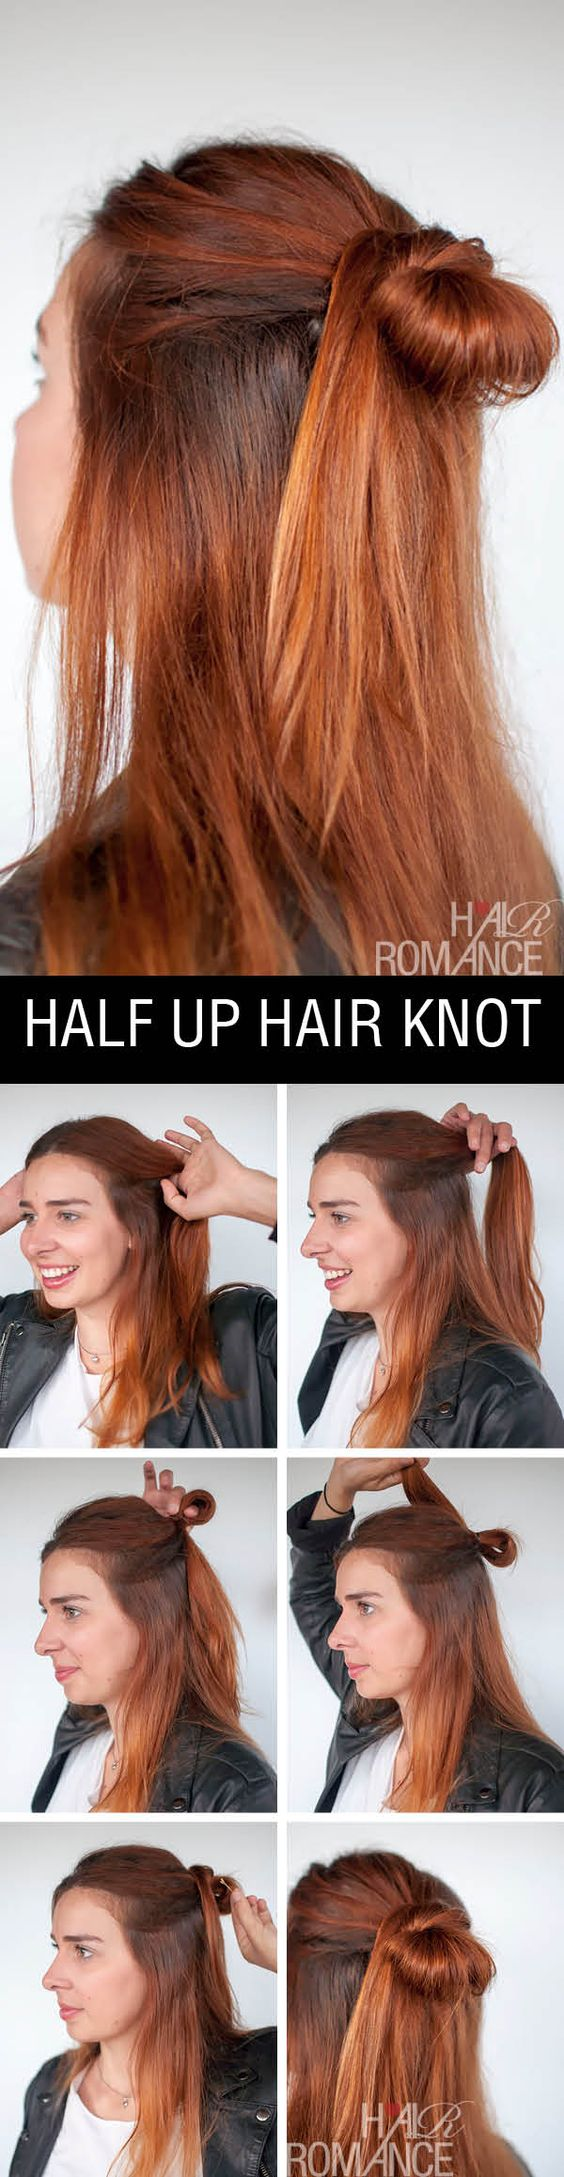 Half up hair knot for light hair over